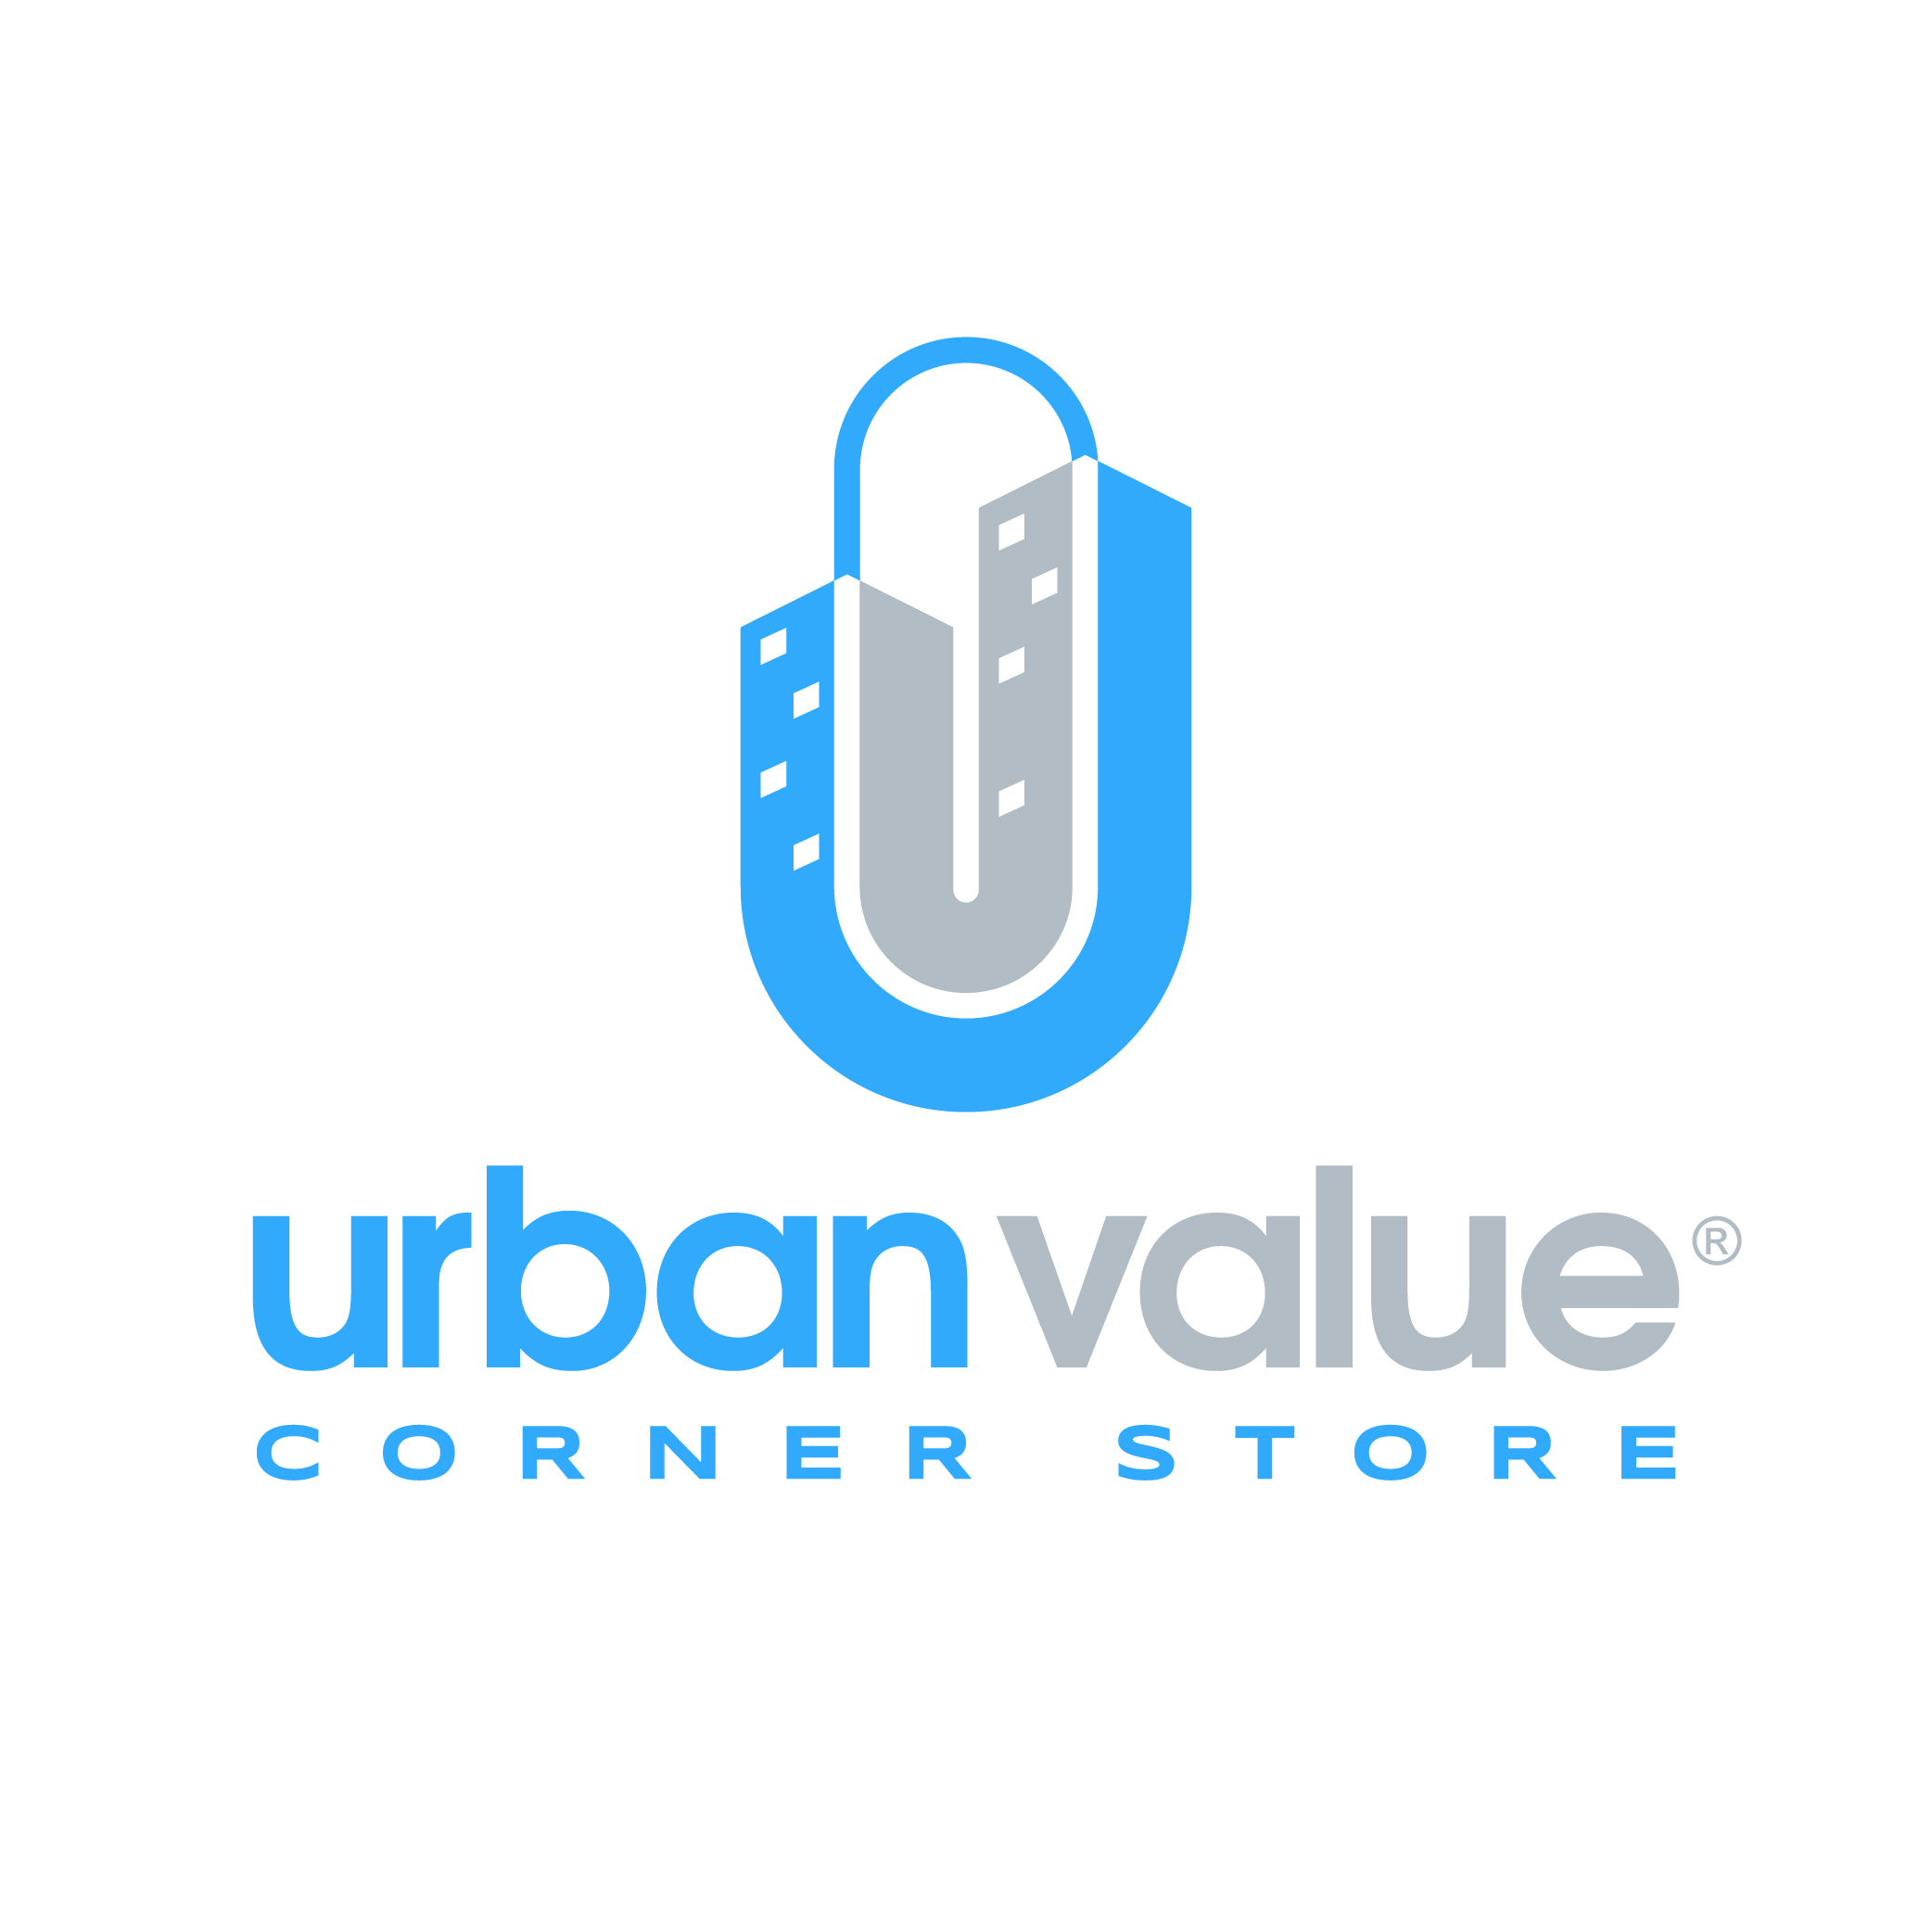 McKinney's Urban Value Store Selects Core-Mark as Primary Vendor